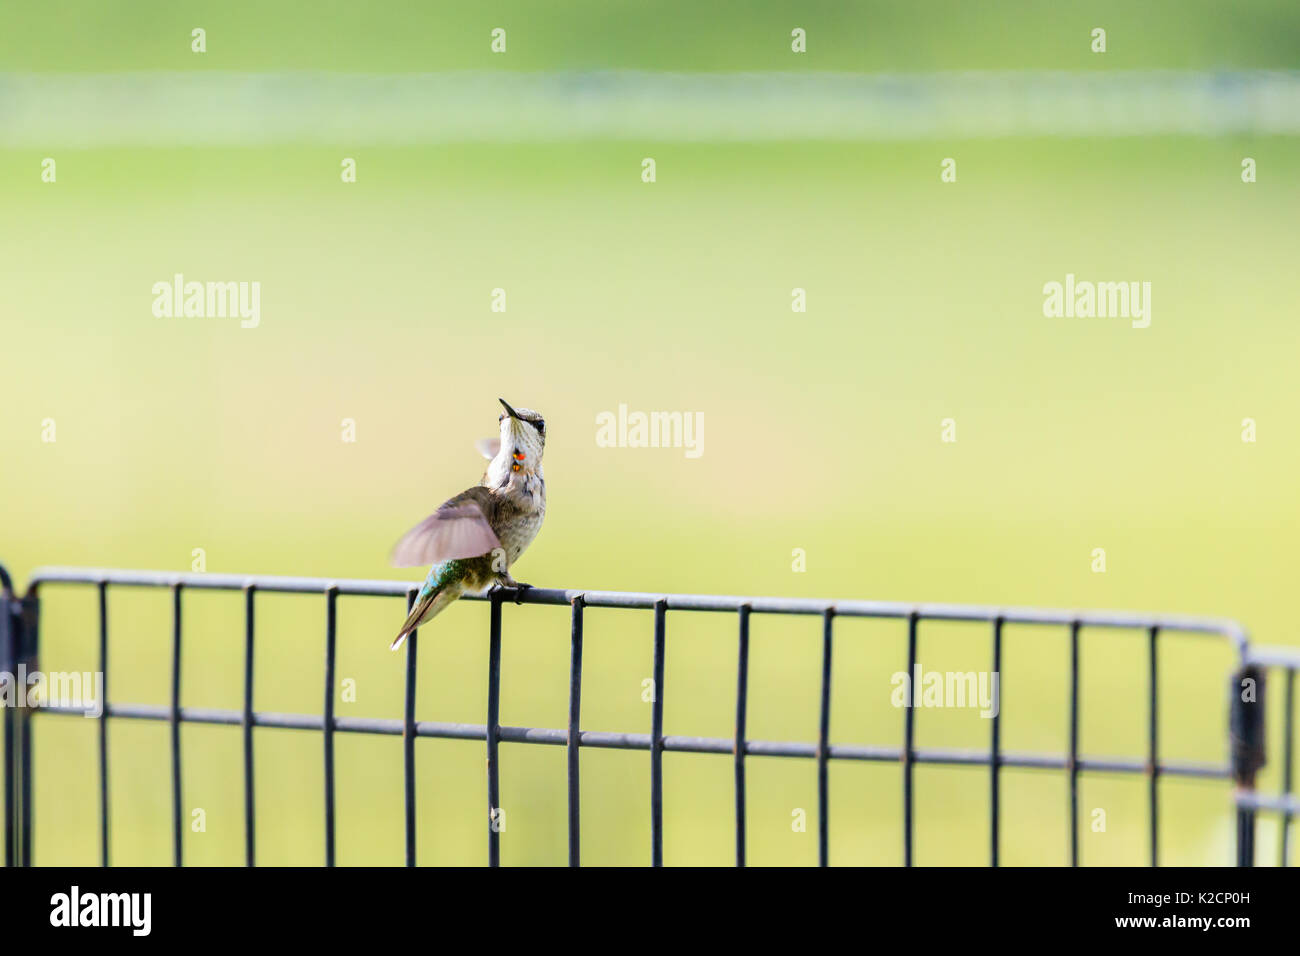 An immature male Ruby-throated hummingbird, Archilochus colubris, perched on a fence. Stock Photo